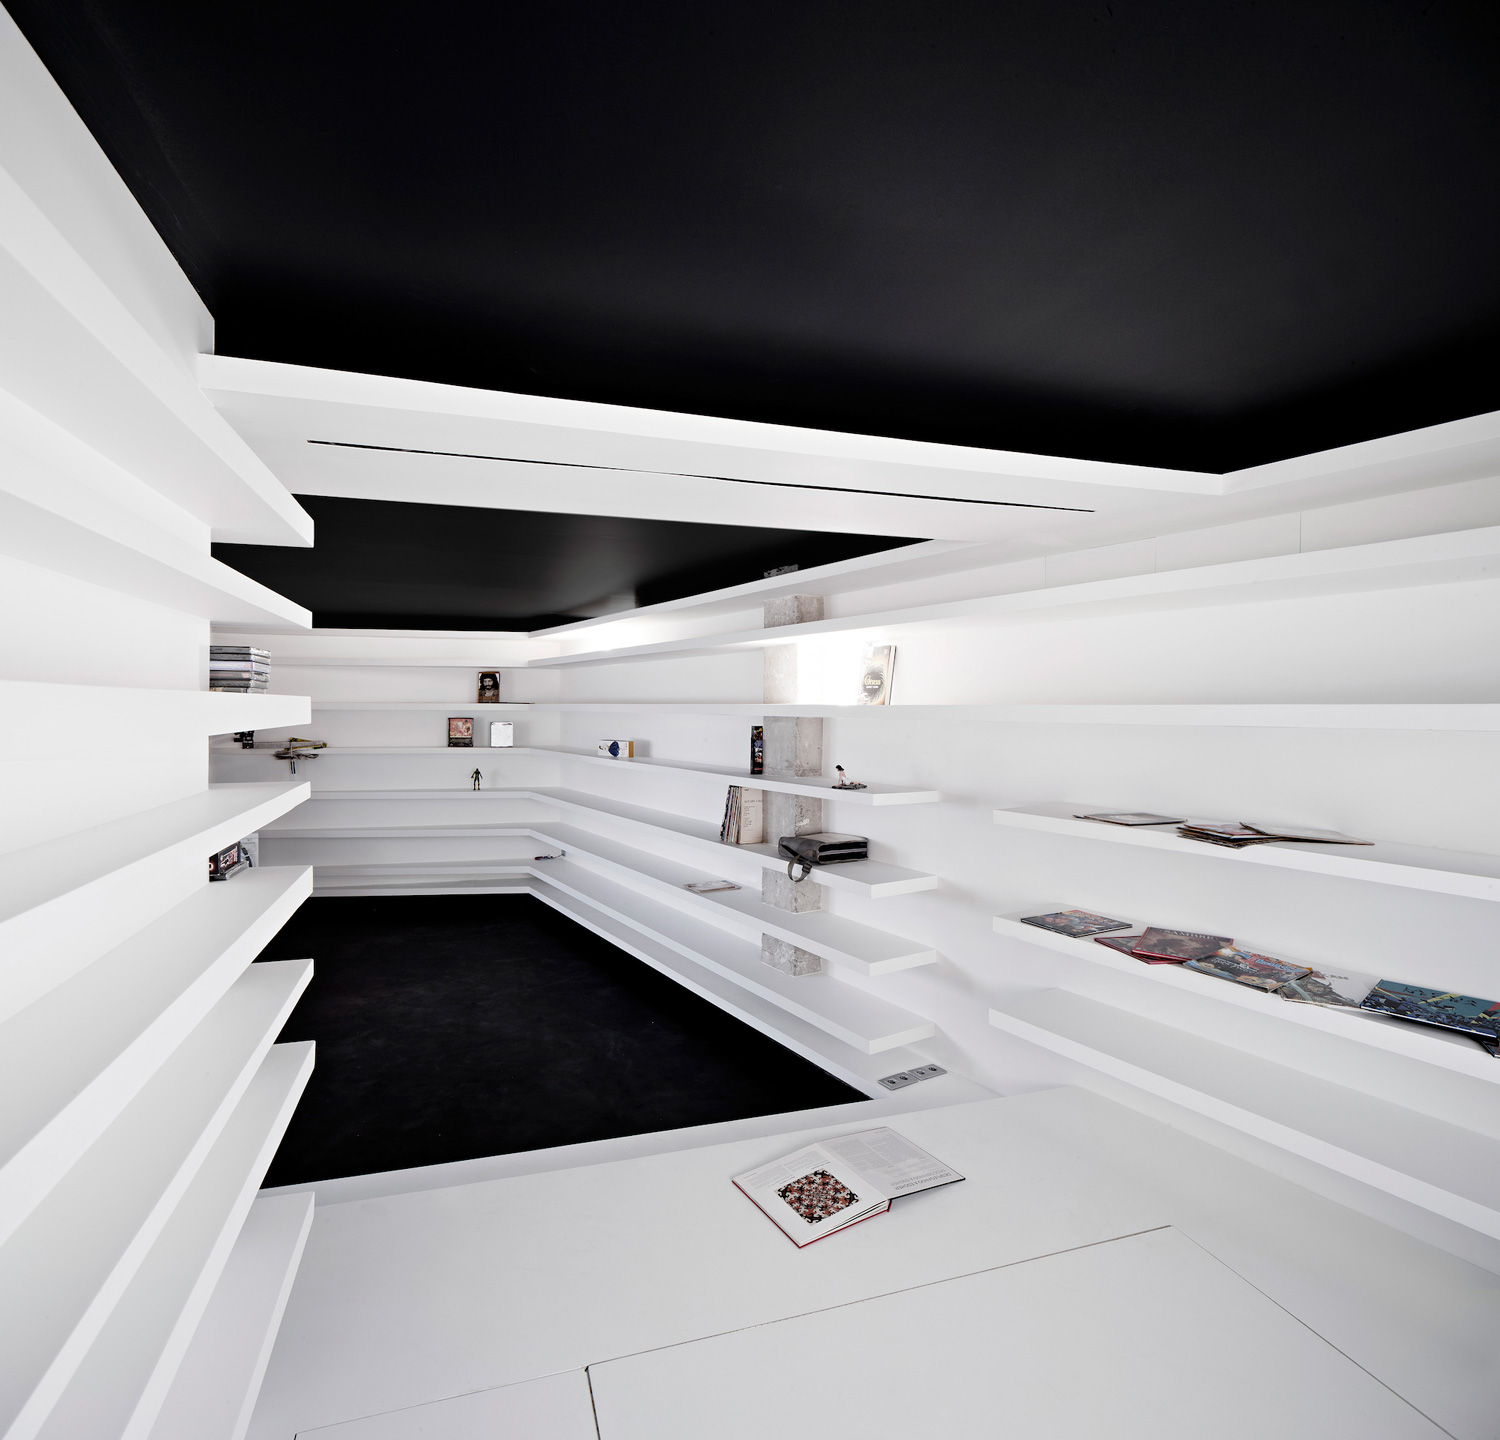 Unconventional Ways To Extend The Storage Space by YOY Design